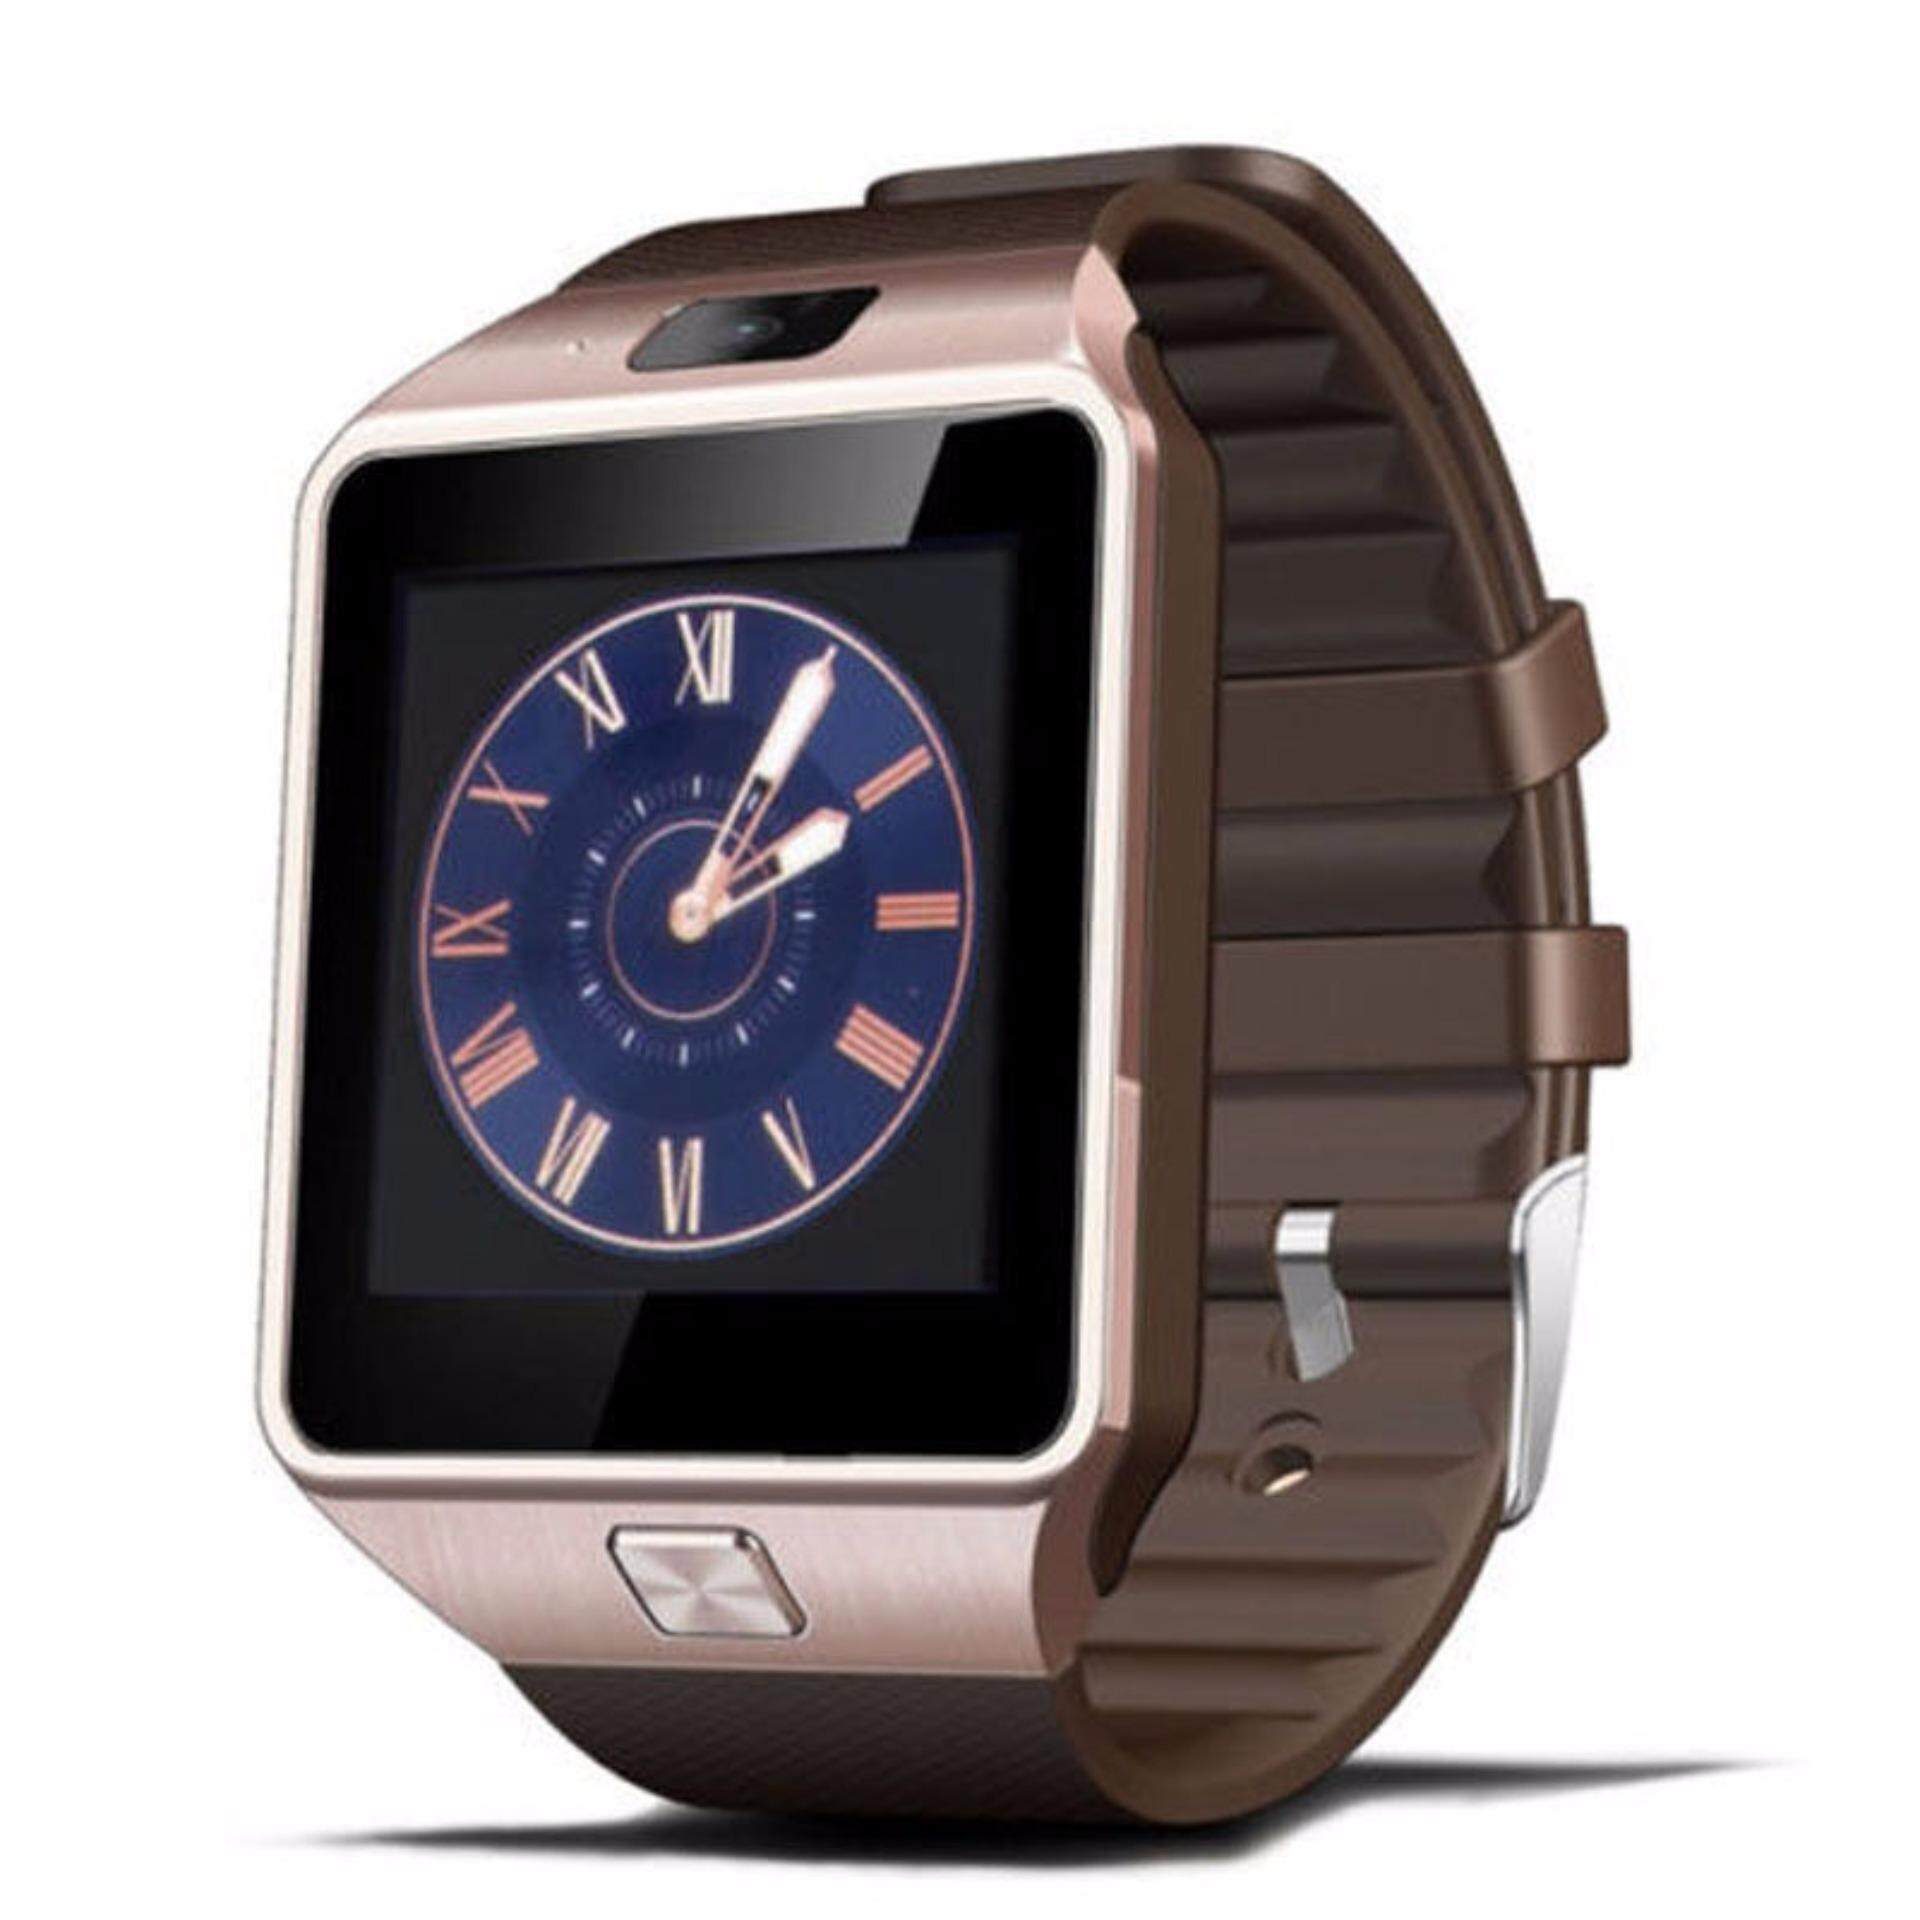 Smart Watch DZ09 with Bluetooth Support SIM Card Connectivity iPhone Android Phone (Gold) **FREE Screen Protector & Battery**